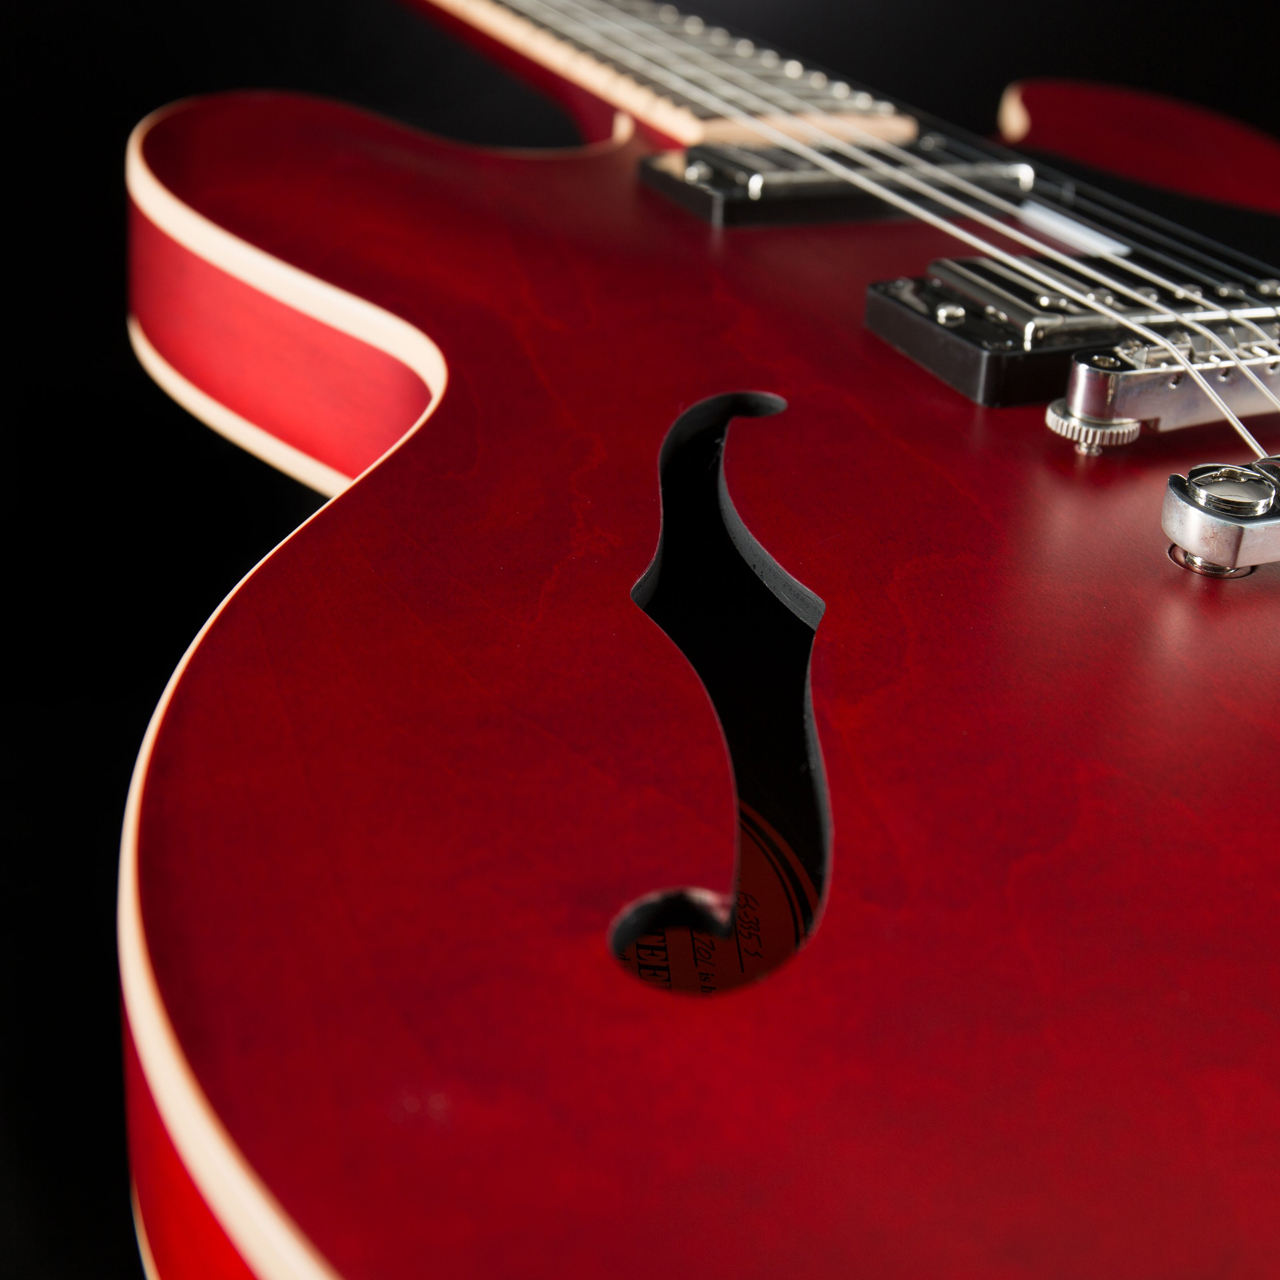 Gibson ES-335 Satin Faded Cherry Korpus